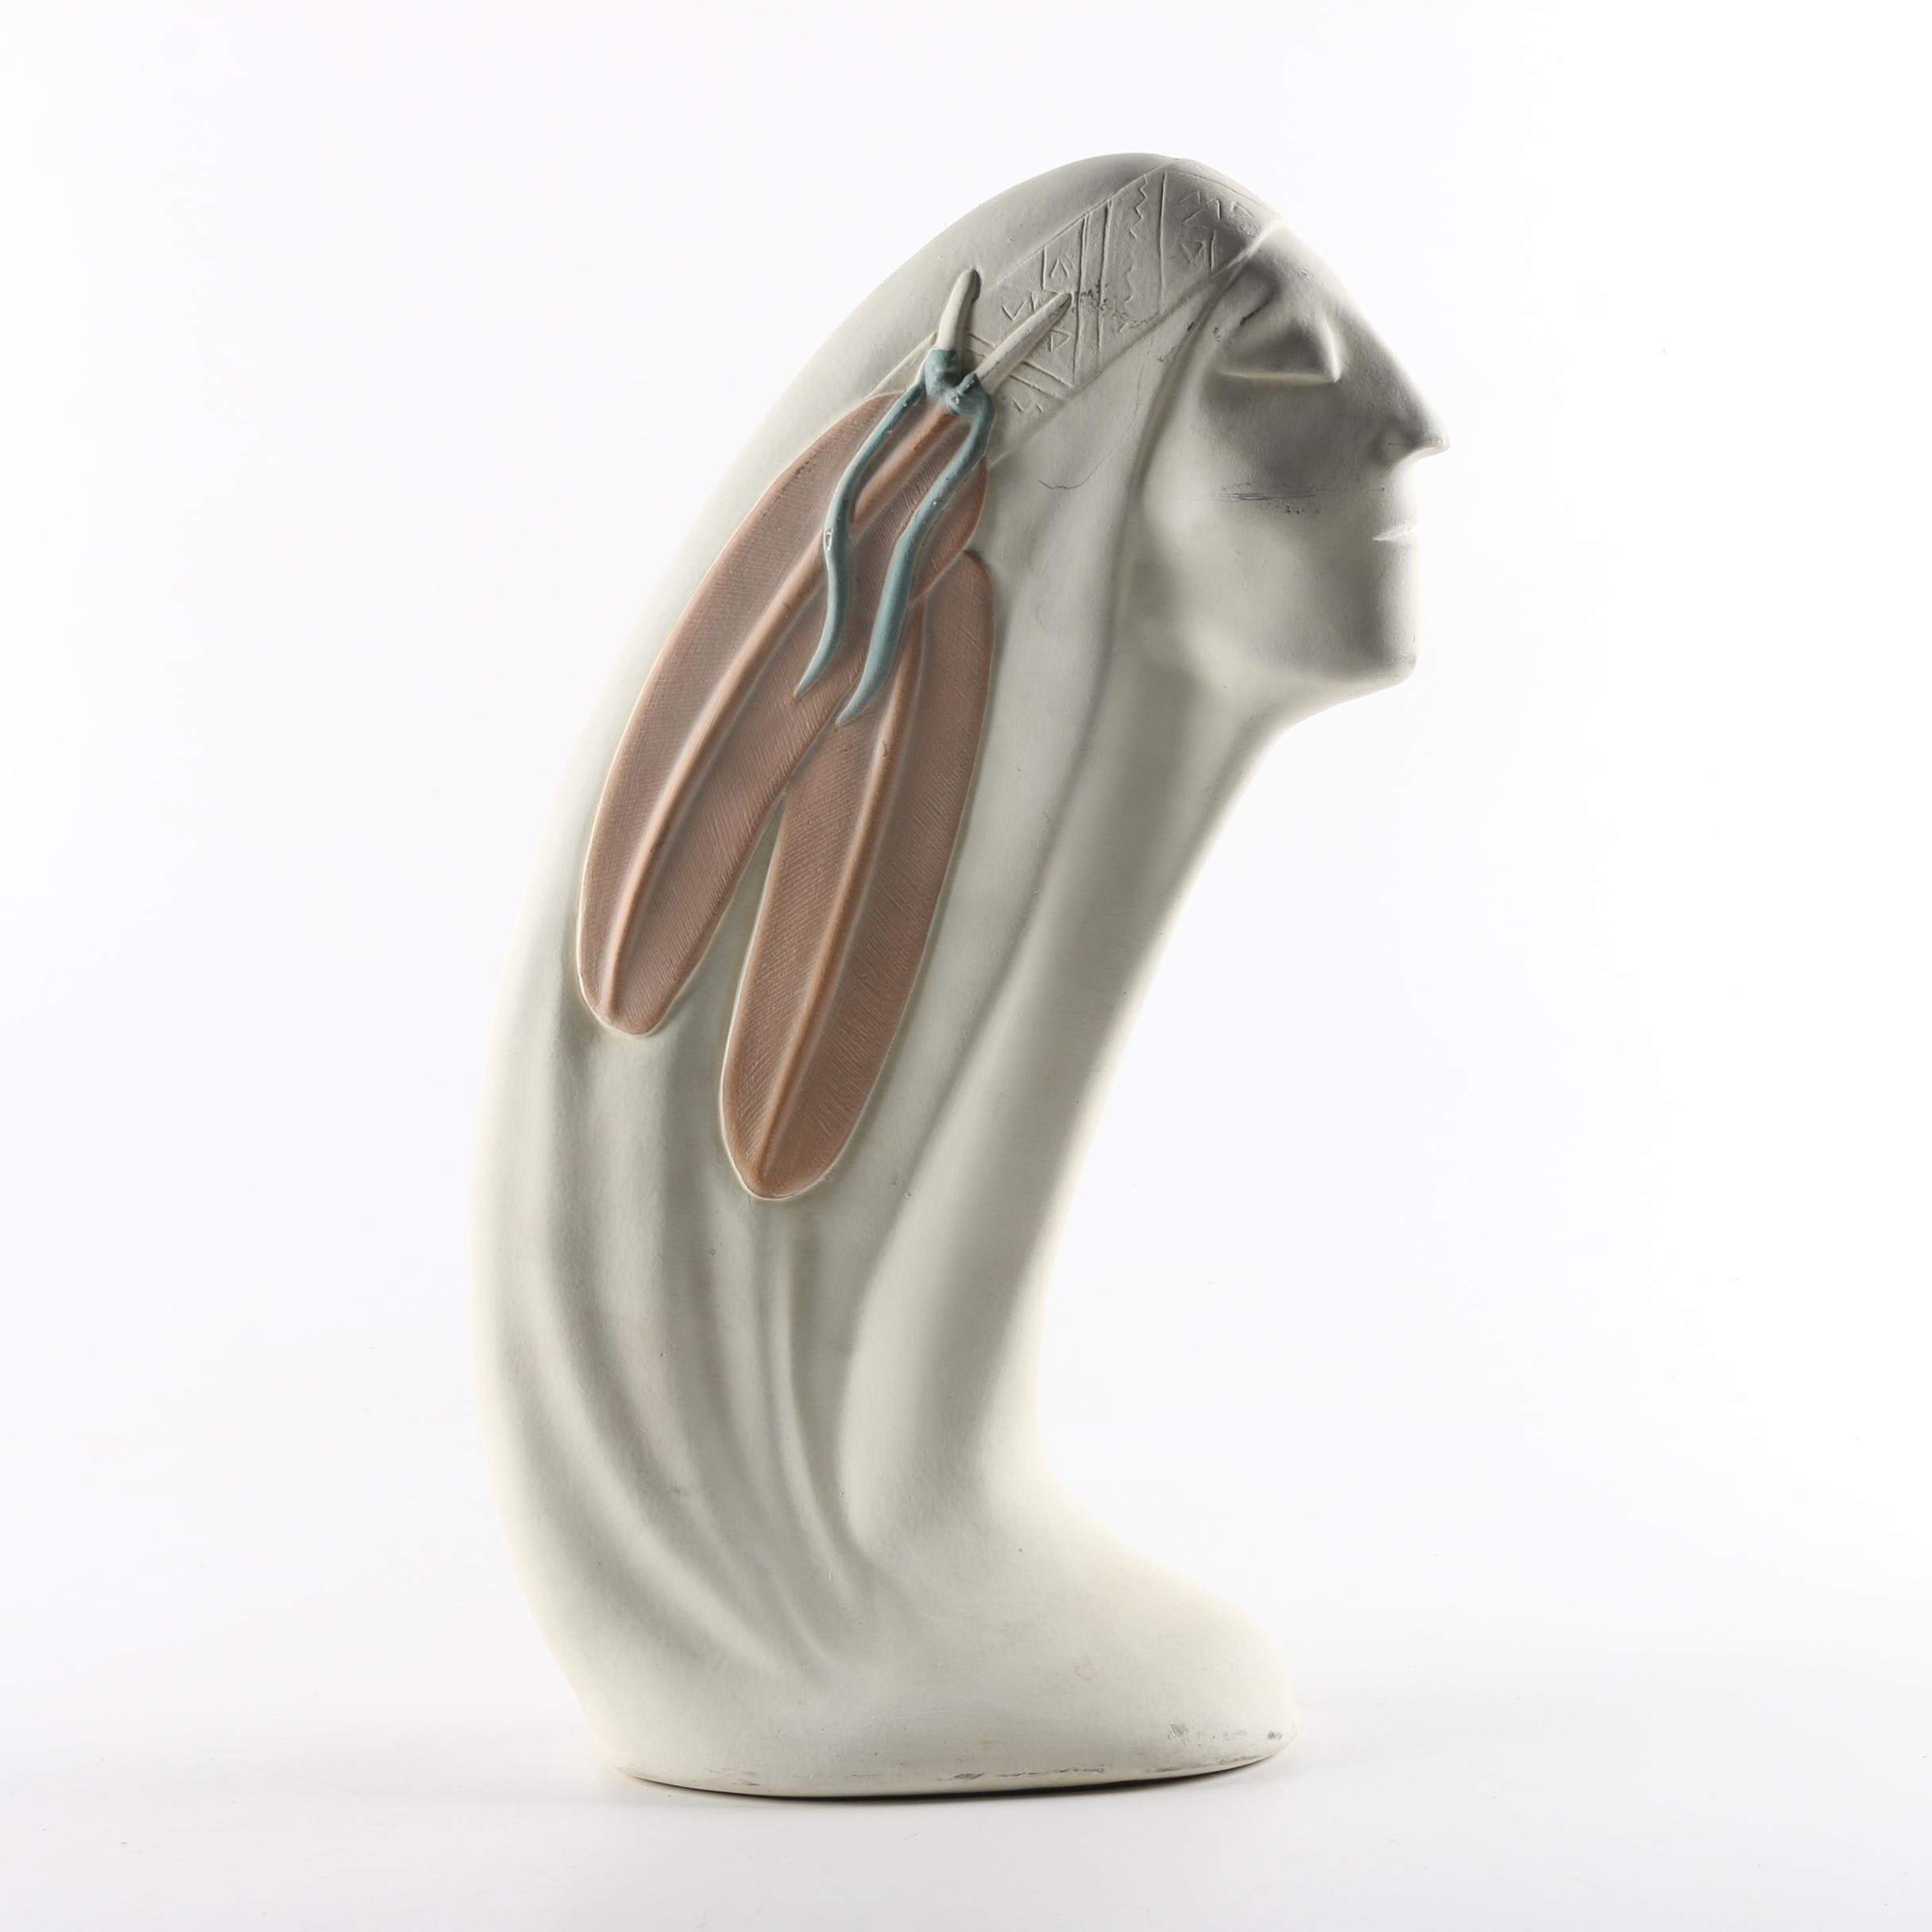 Hózhó Ceramic Bust of Figure with Headband and Feathers